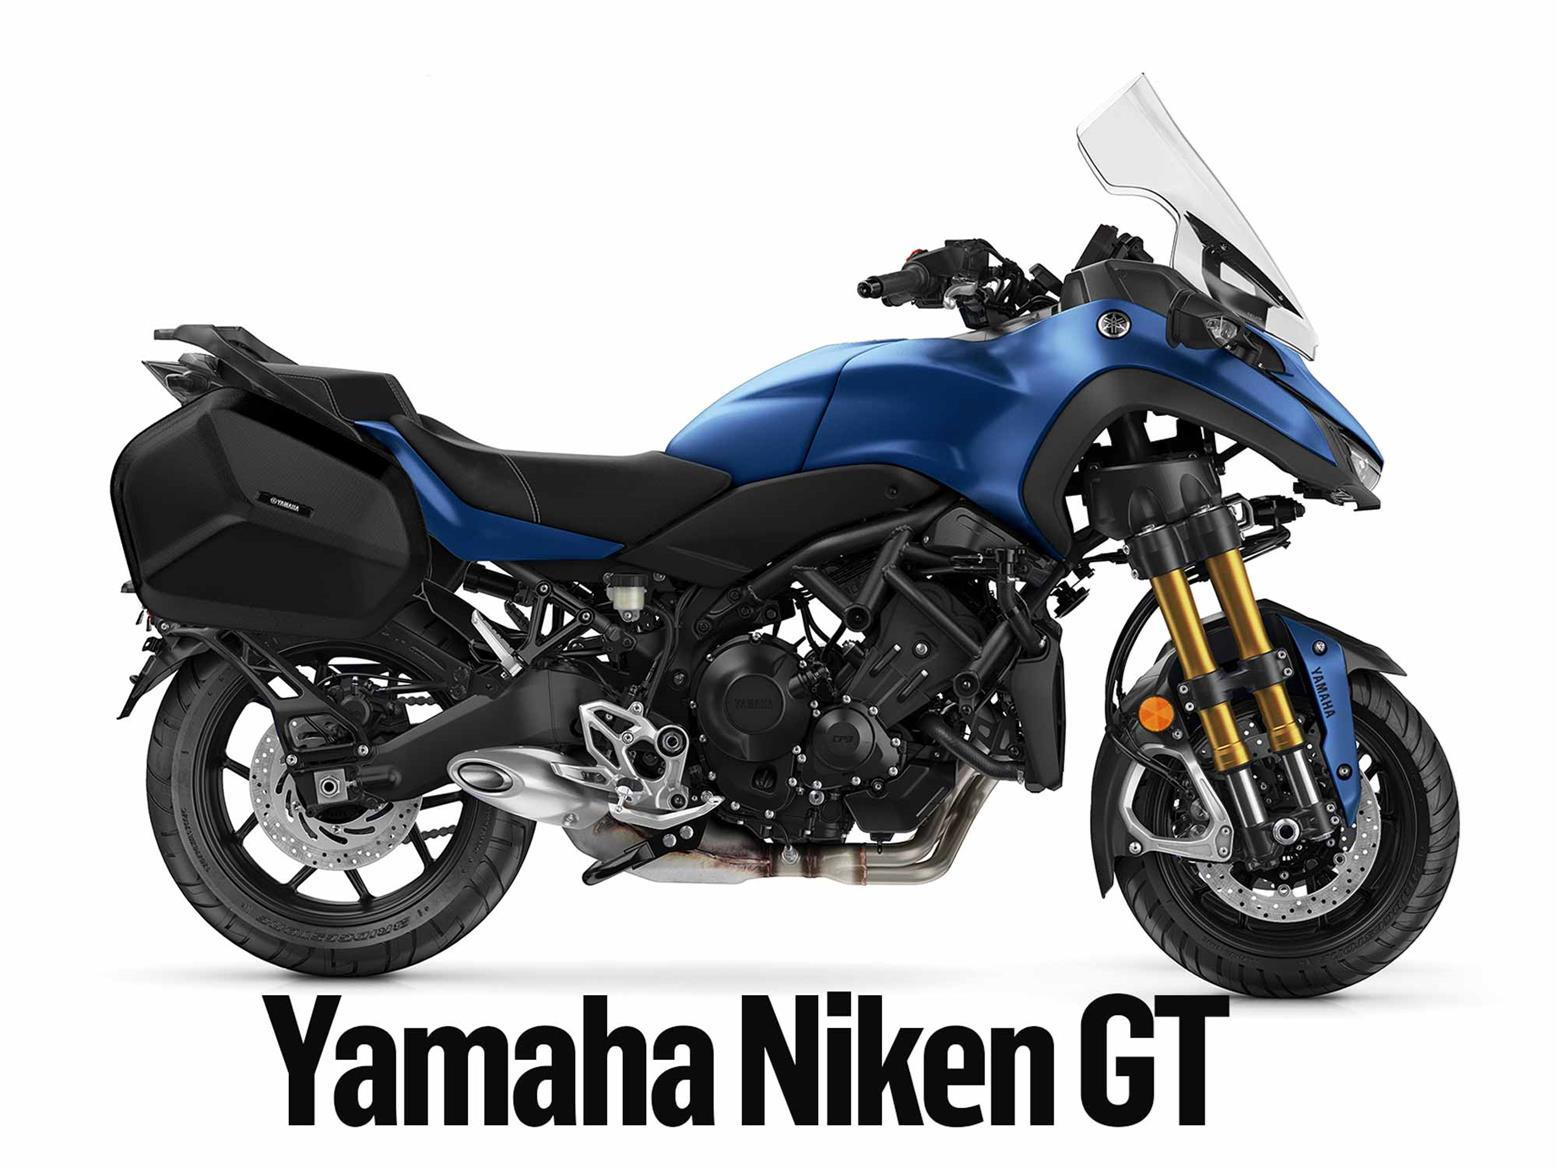 Read MCN's detailed Yamaha Niken GT long-term test review here